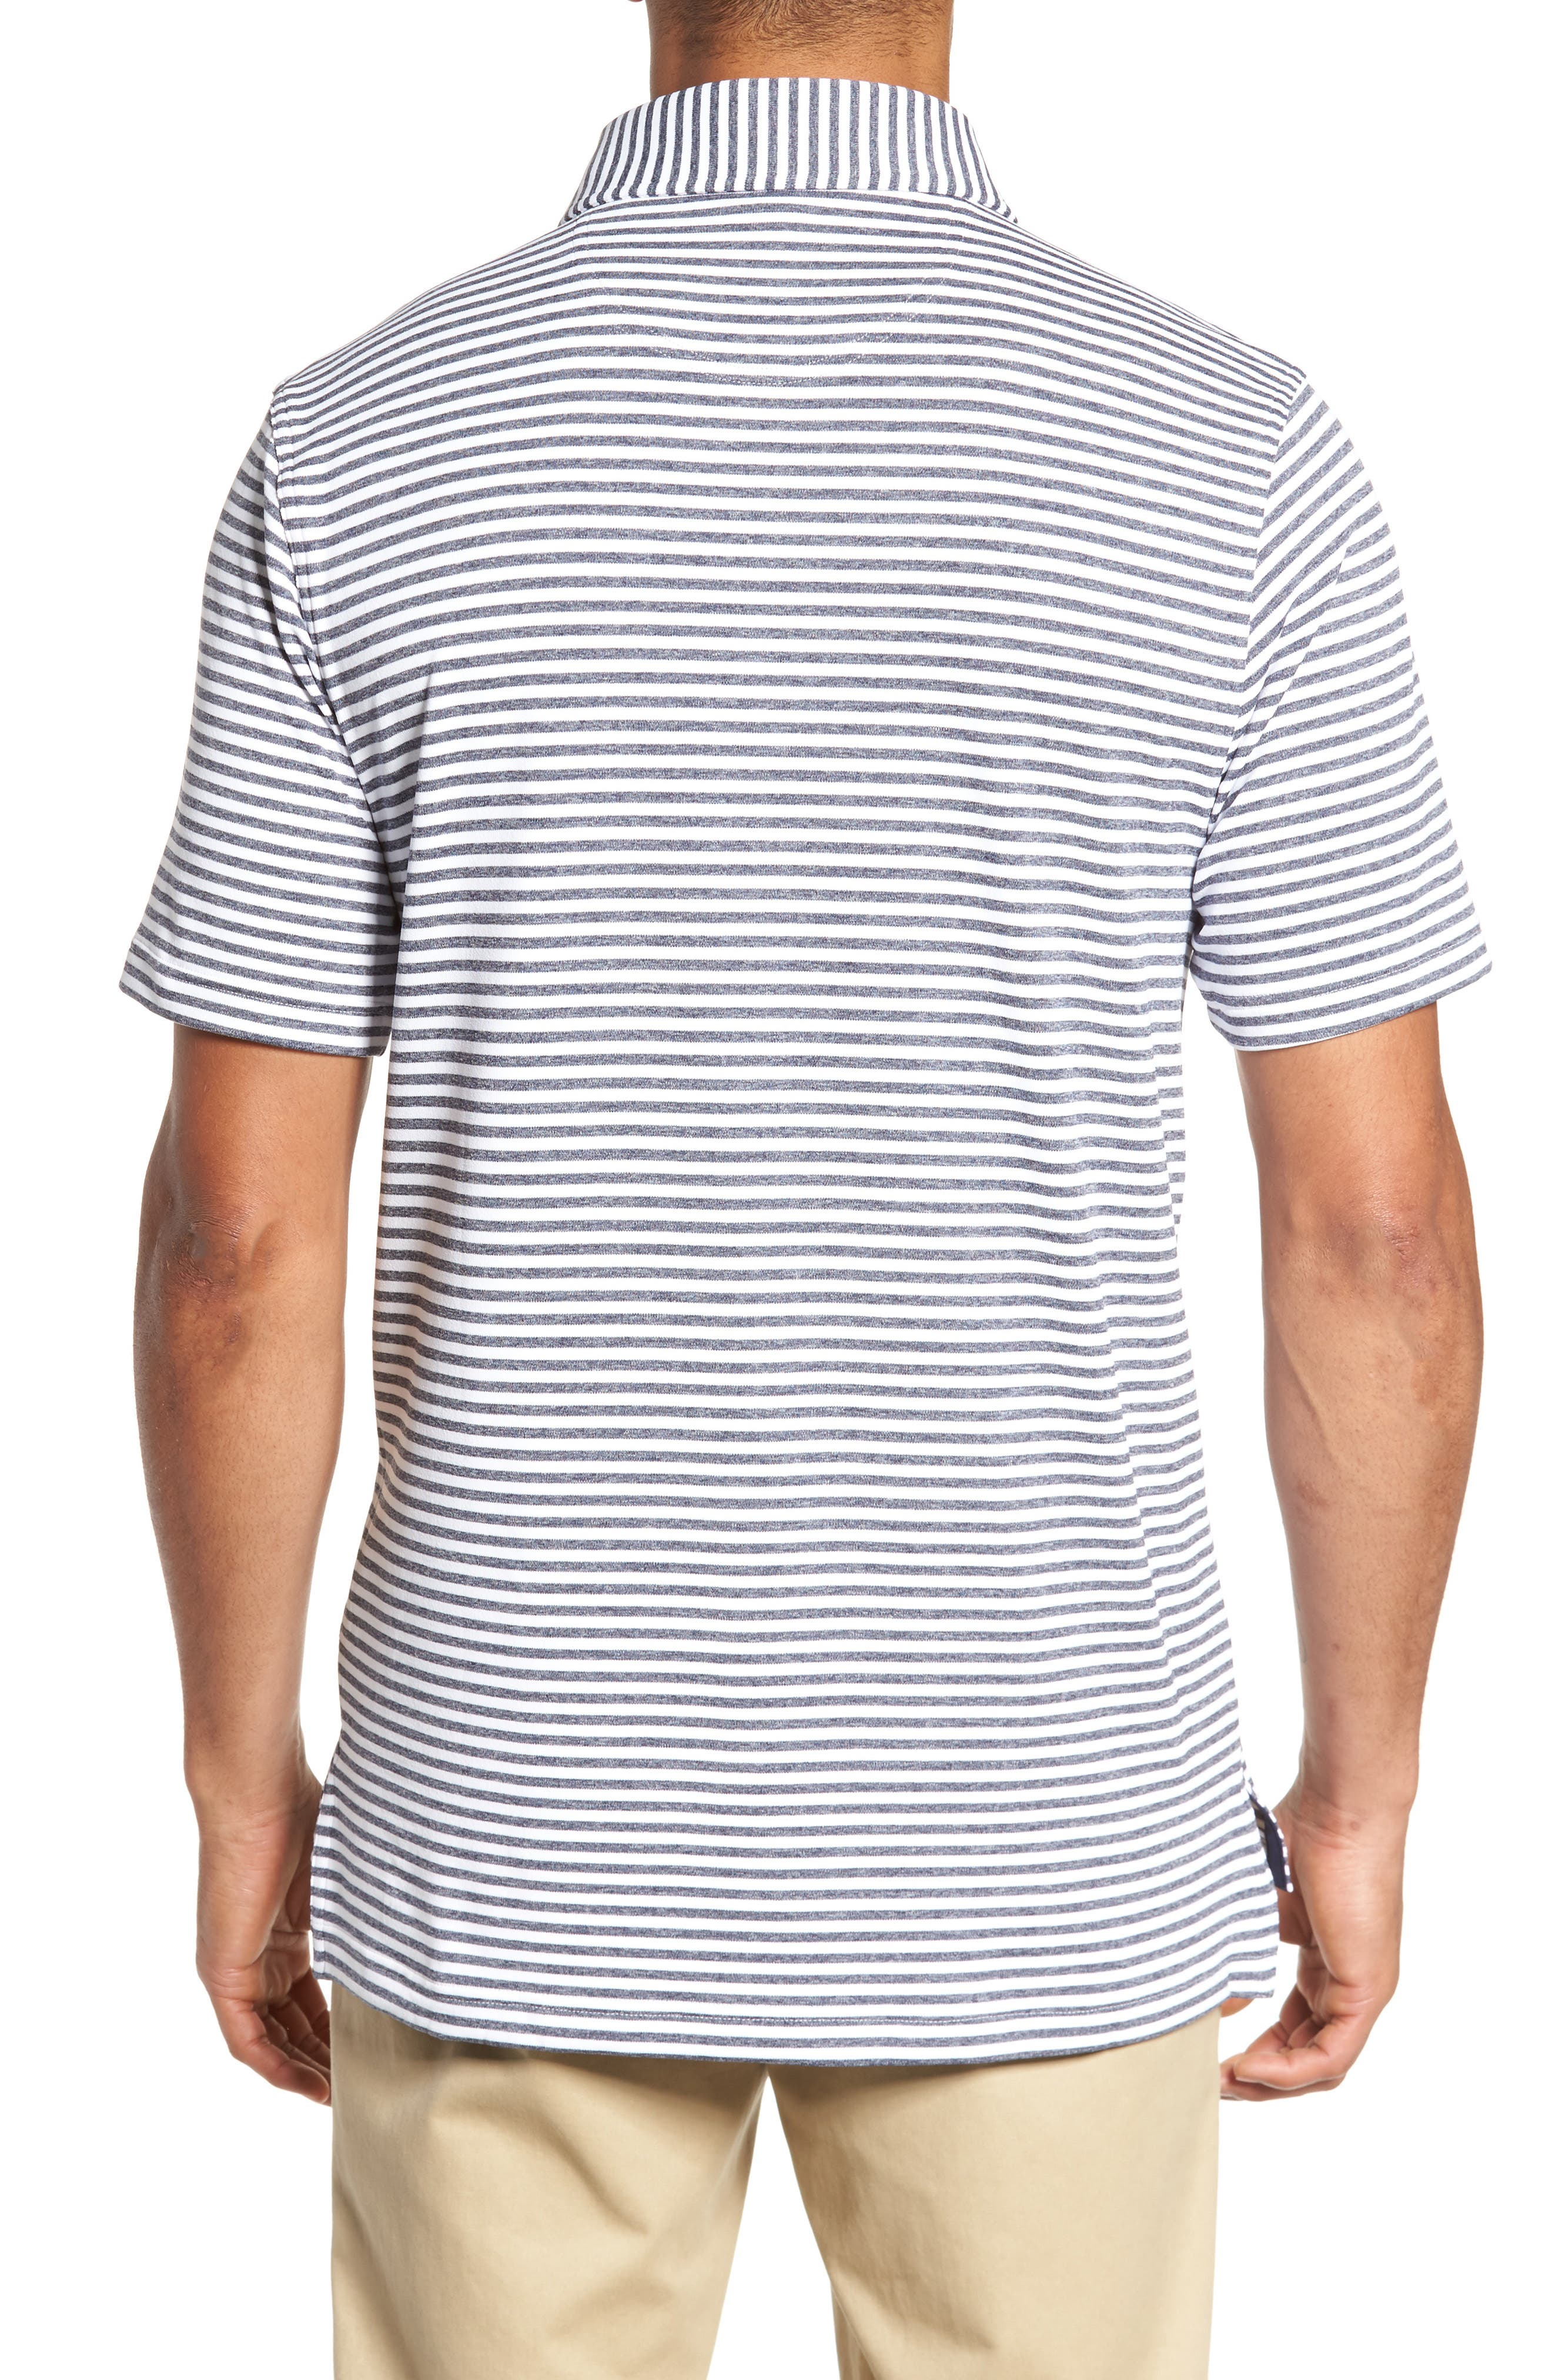 XH2O Tranquil Stripe Jersey Polo,                             Alternate thumbnail 2, color,                             100